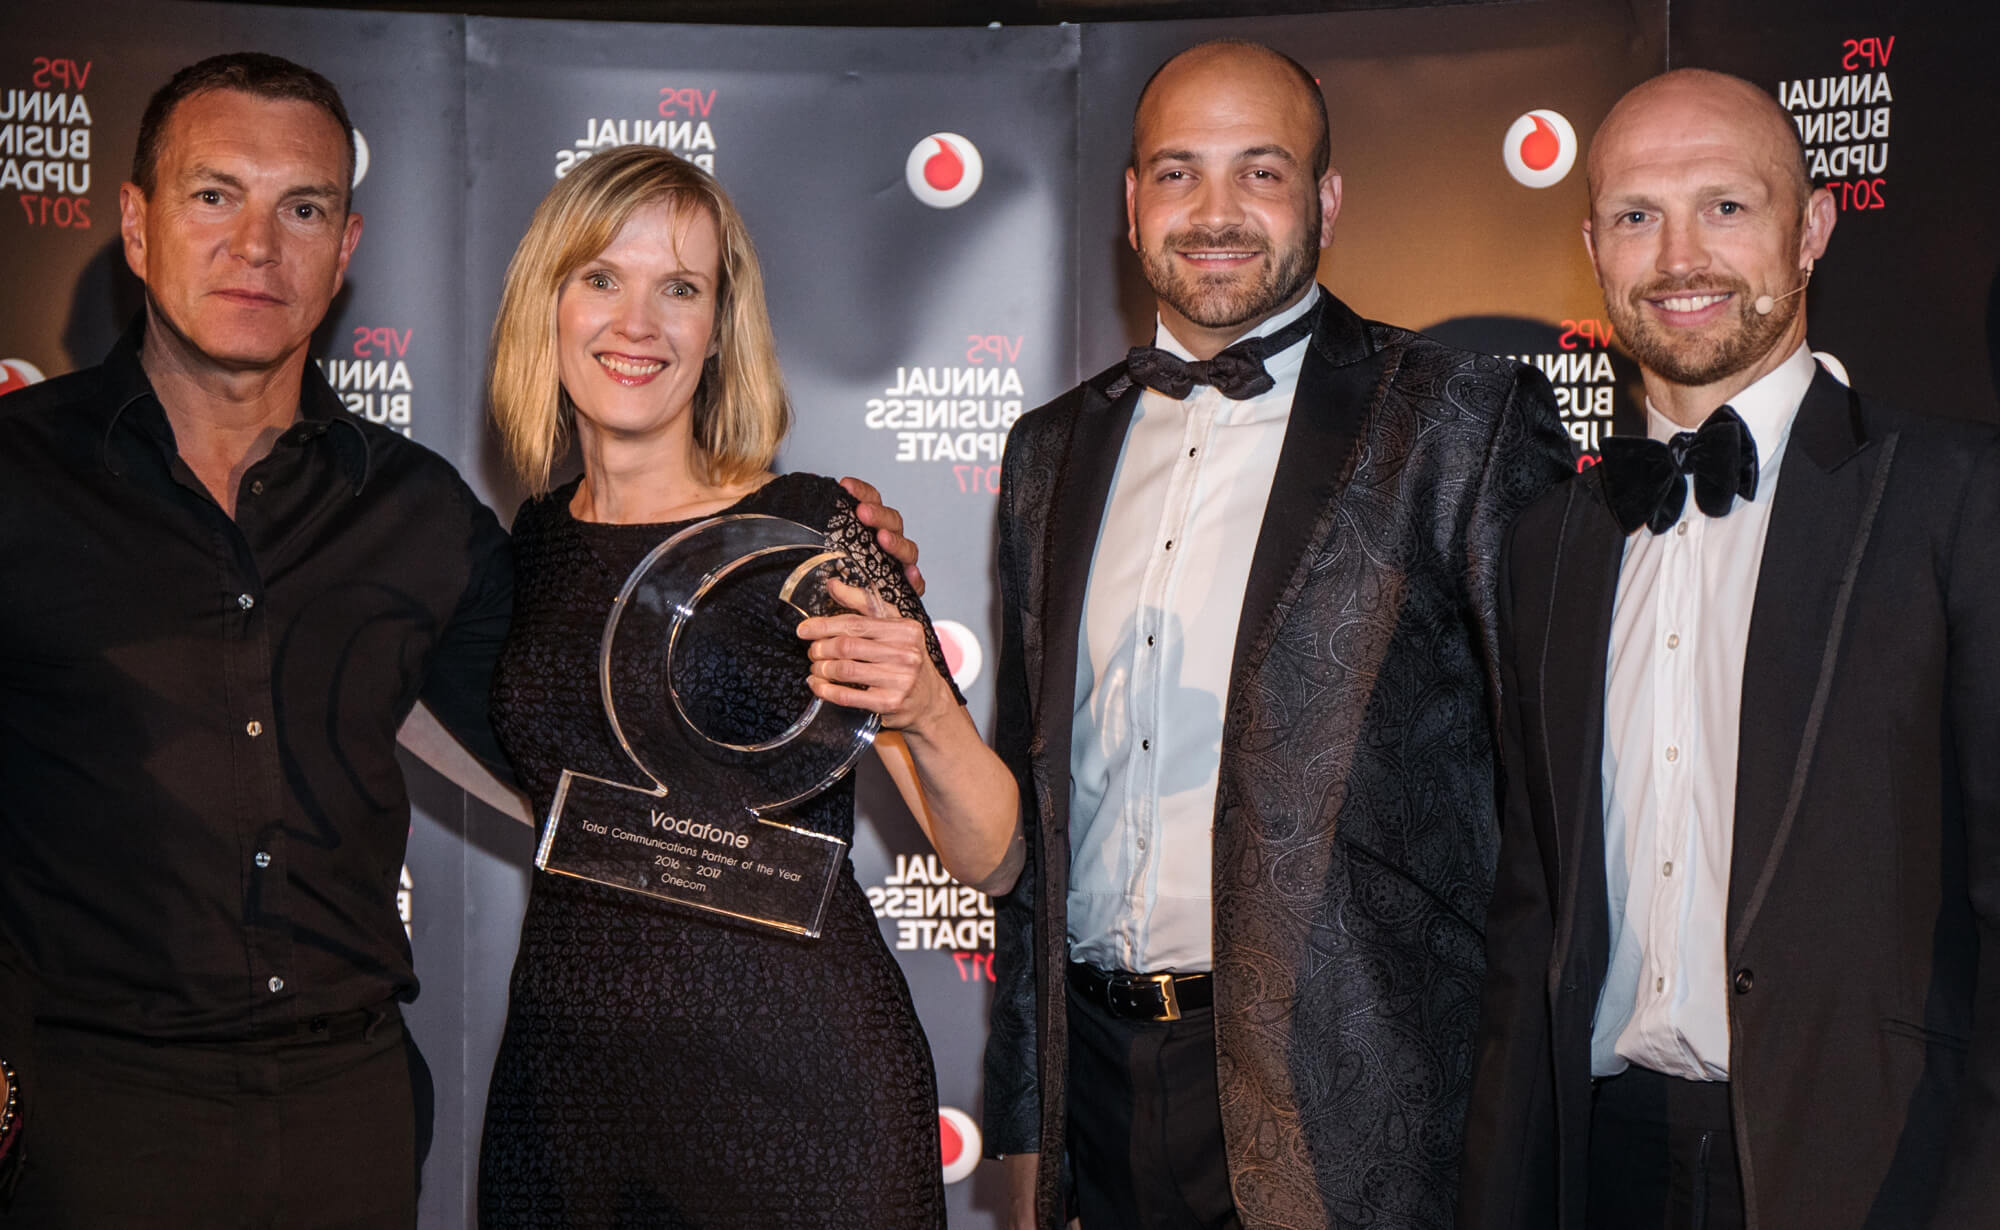 Onecom awarded top Vodafone accolade for seventh year running